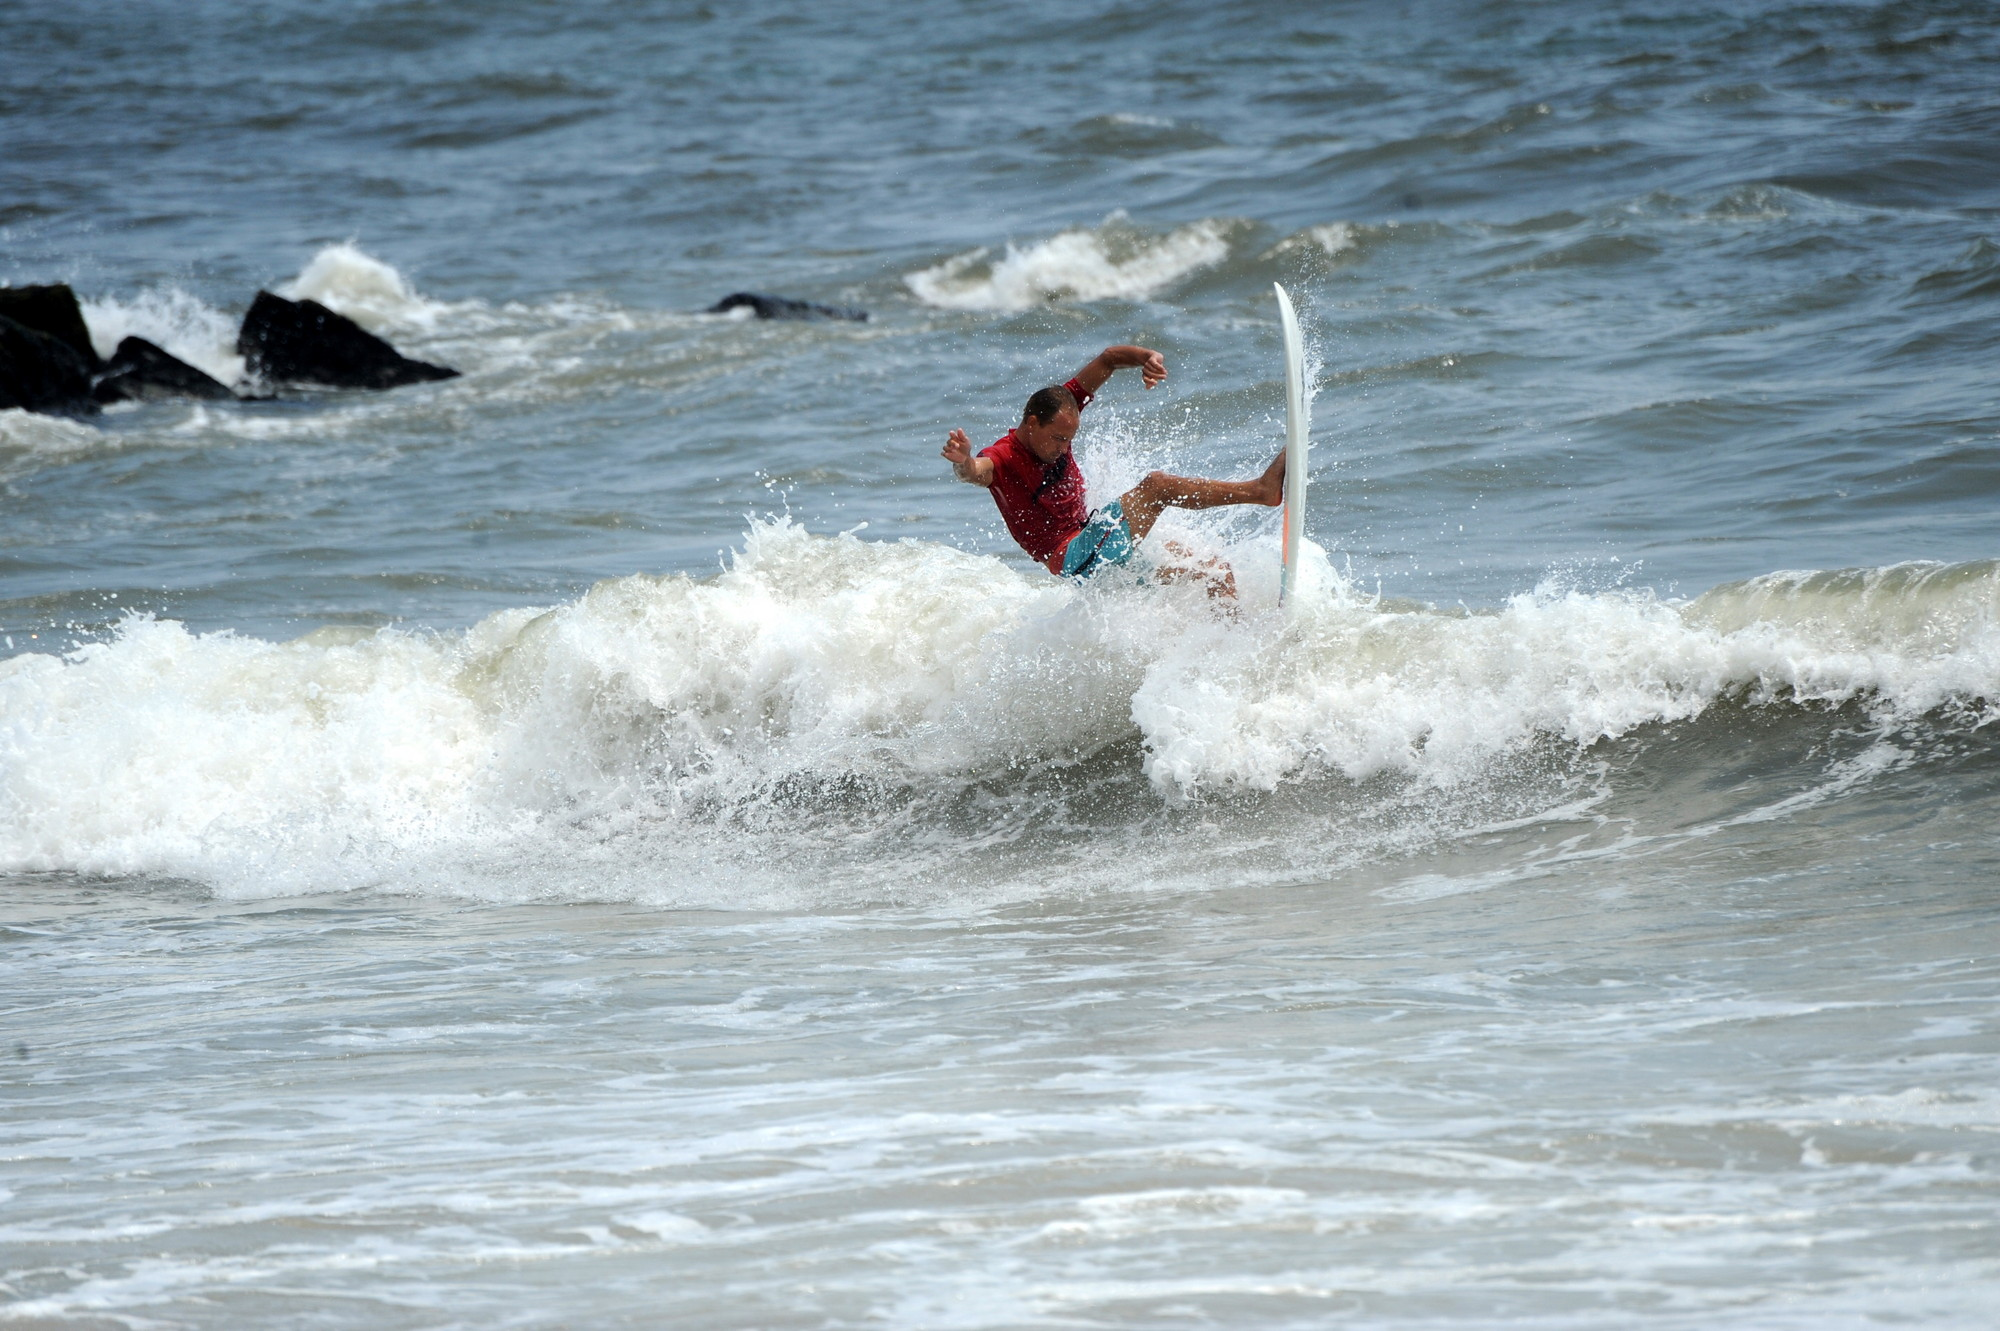 Surfer Alex Fawess was among the 48 competitors in last weekend's surfing contest.